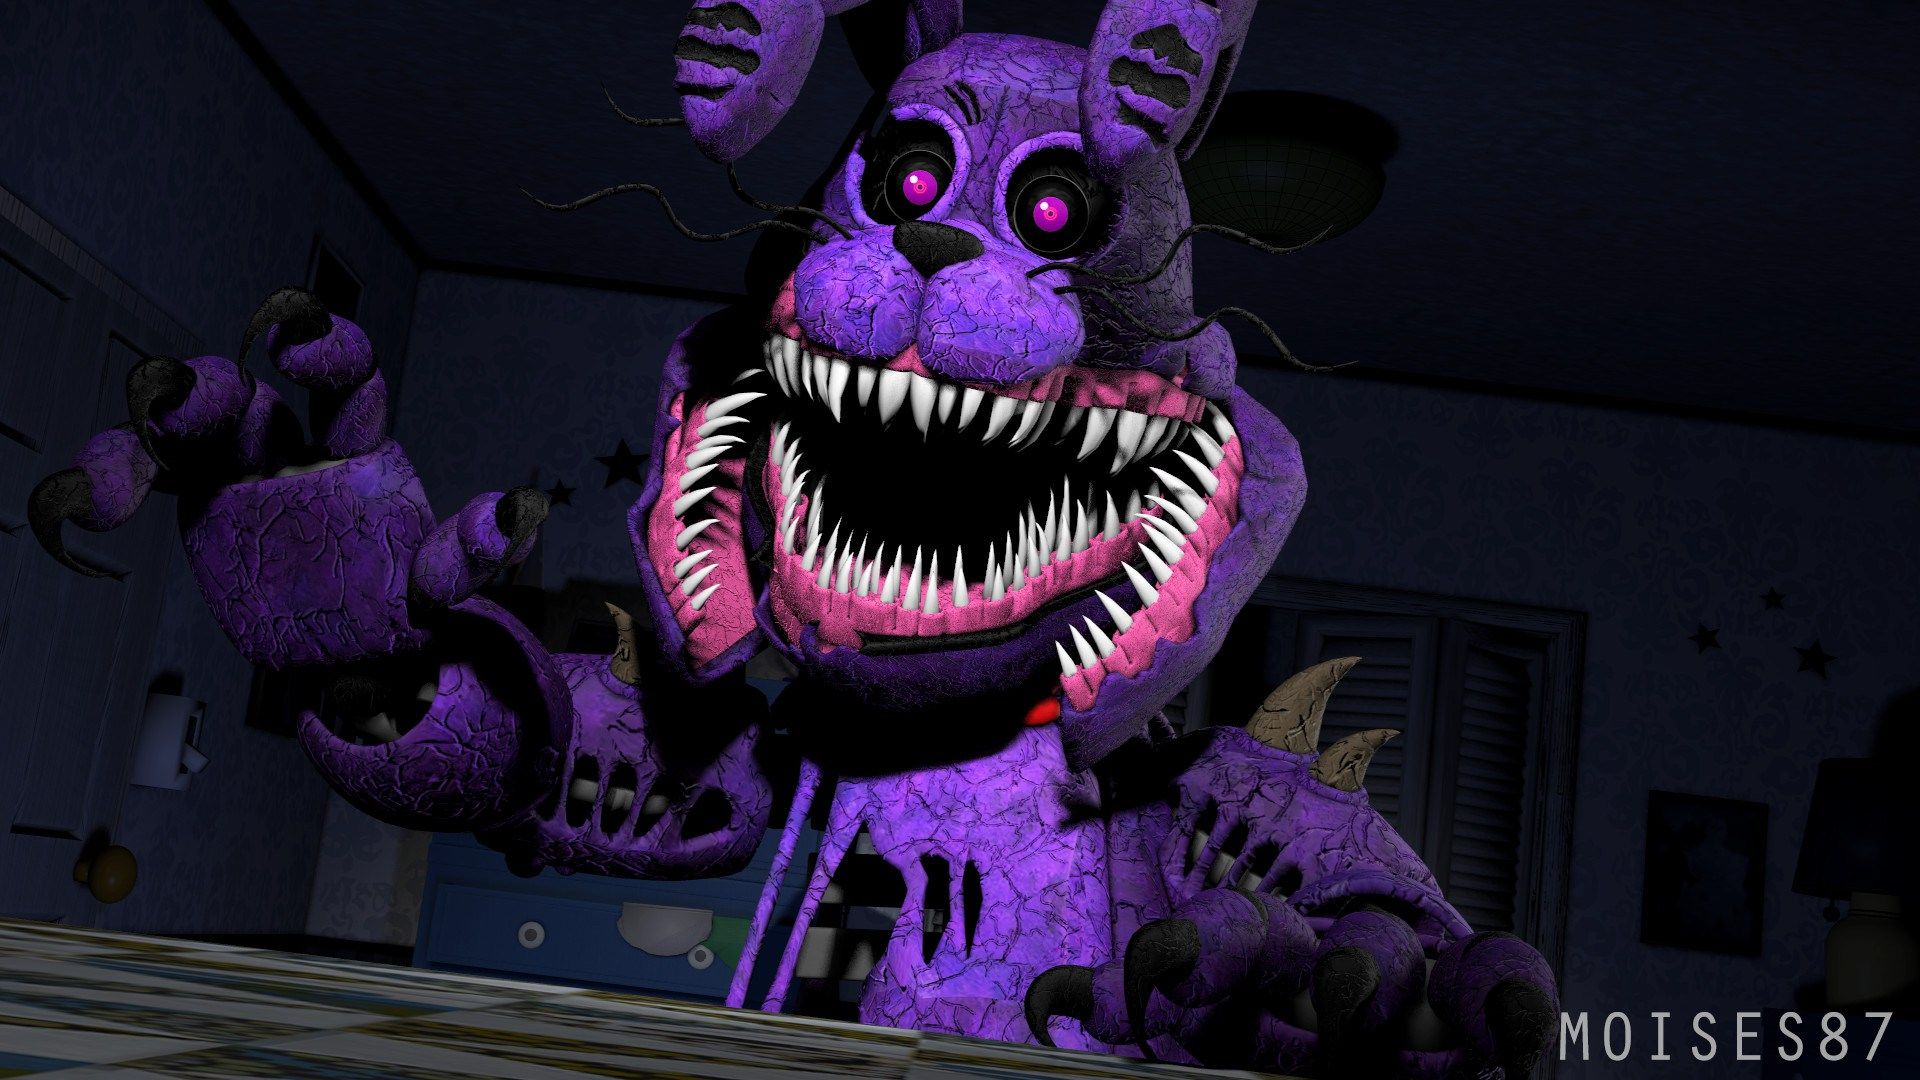 FNAF Bonnie wallpaper download